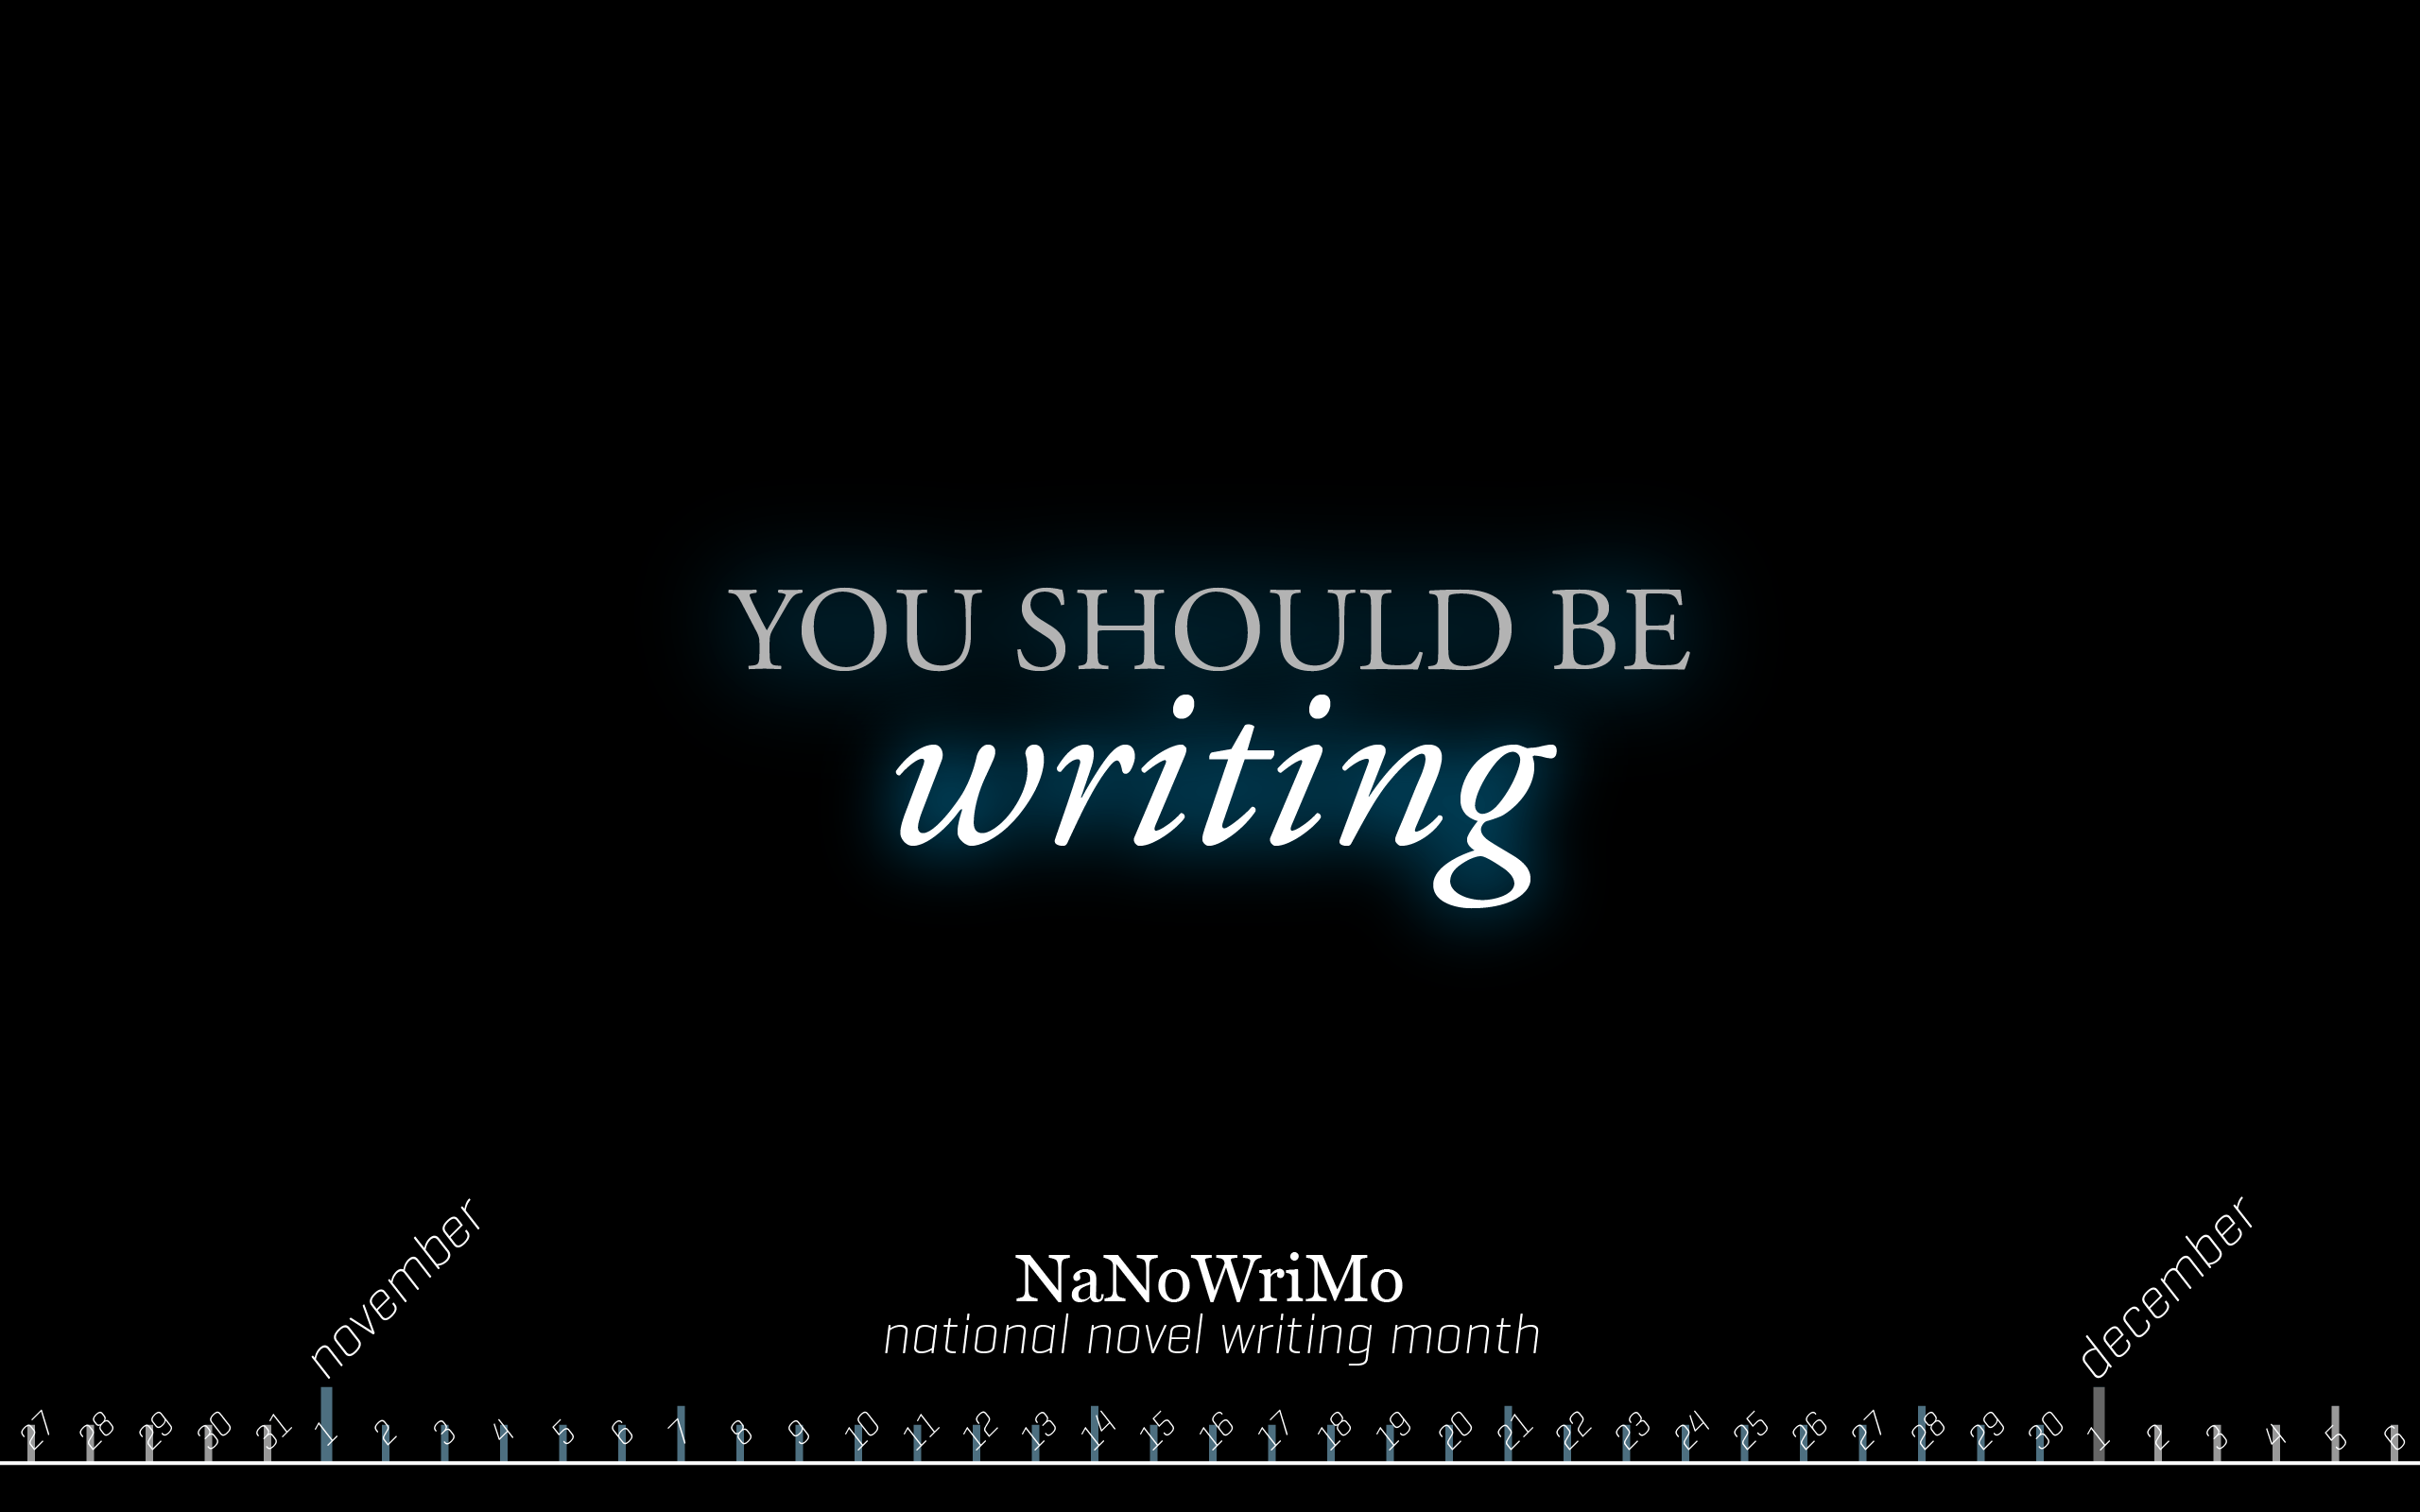 2560x1600 NaNoWriMo wallpaper by texnical-reasons on DeviantArt